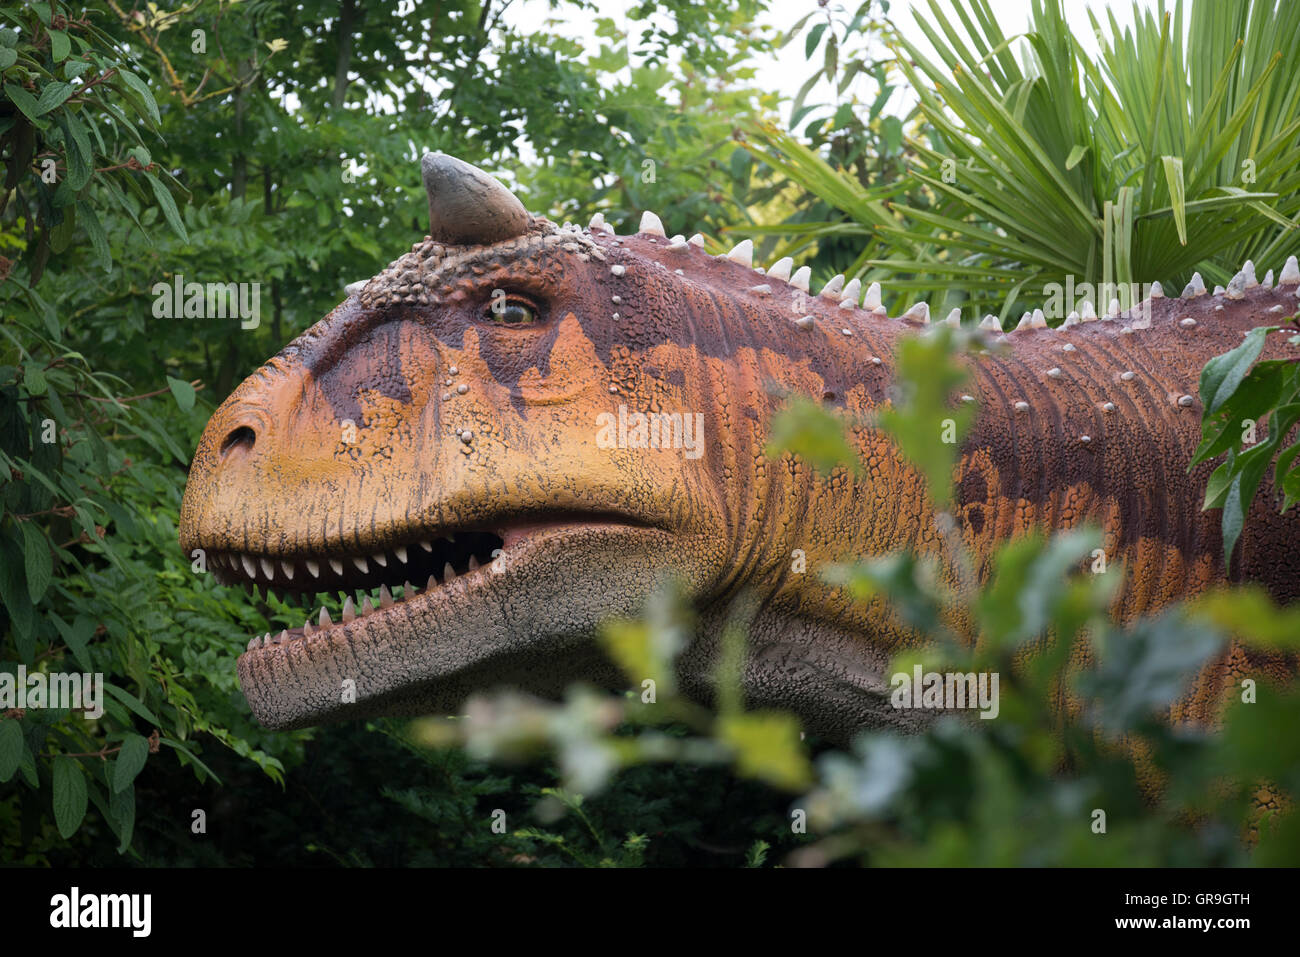 Carnotaurus dinosaur at Chester Zoo,  Cheshire, UK - Stock Image